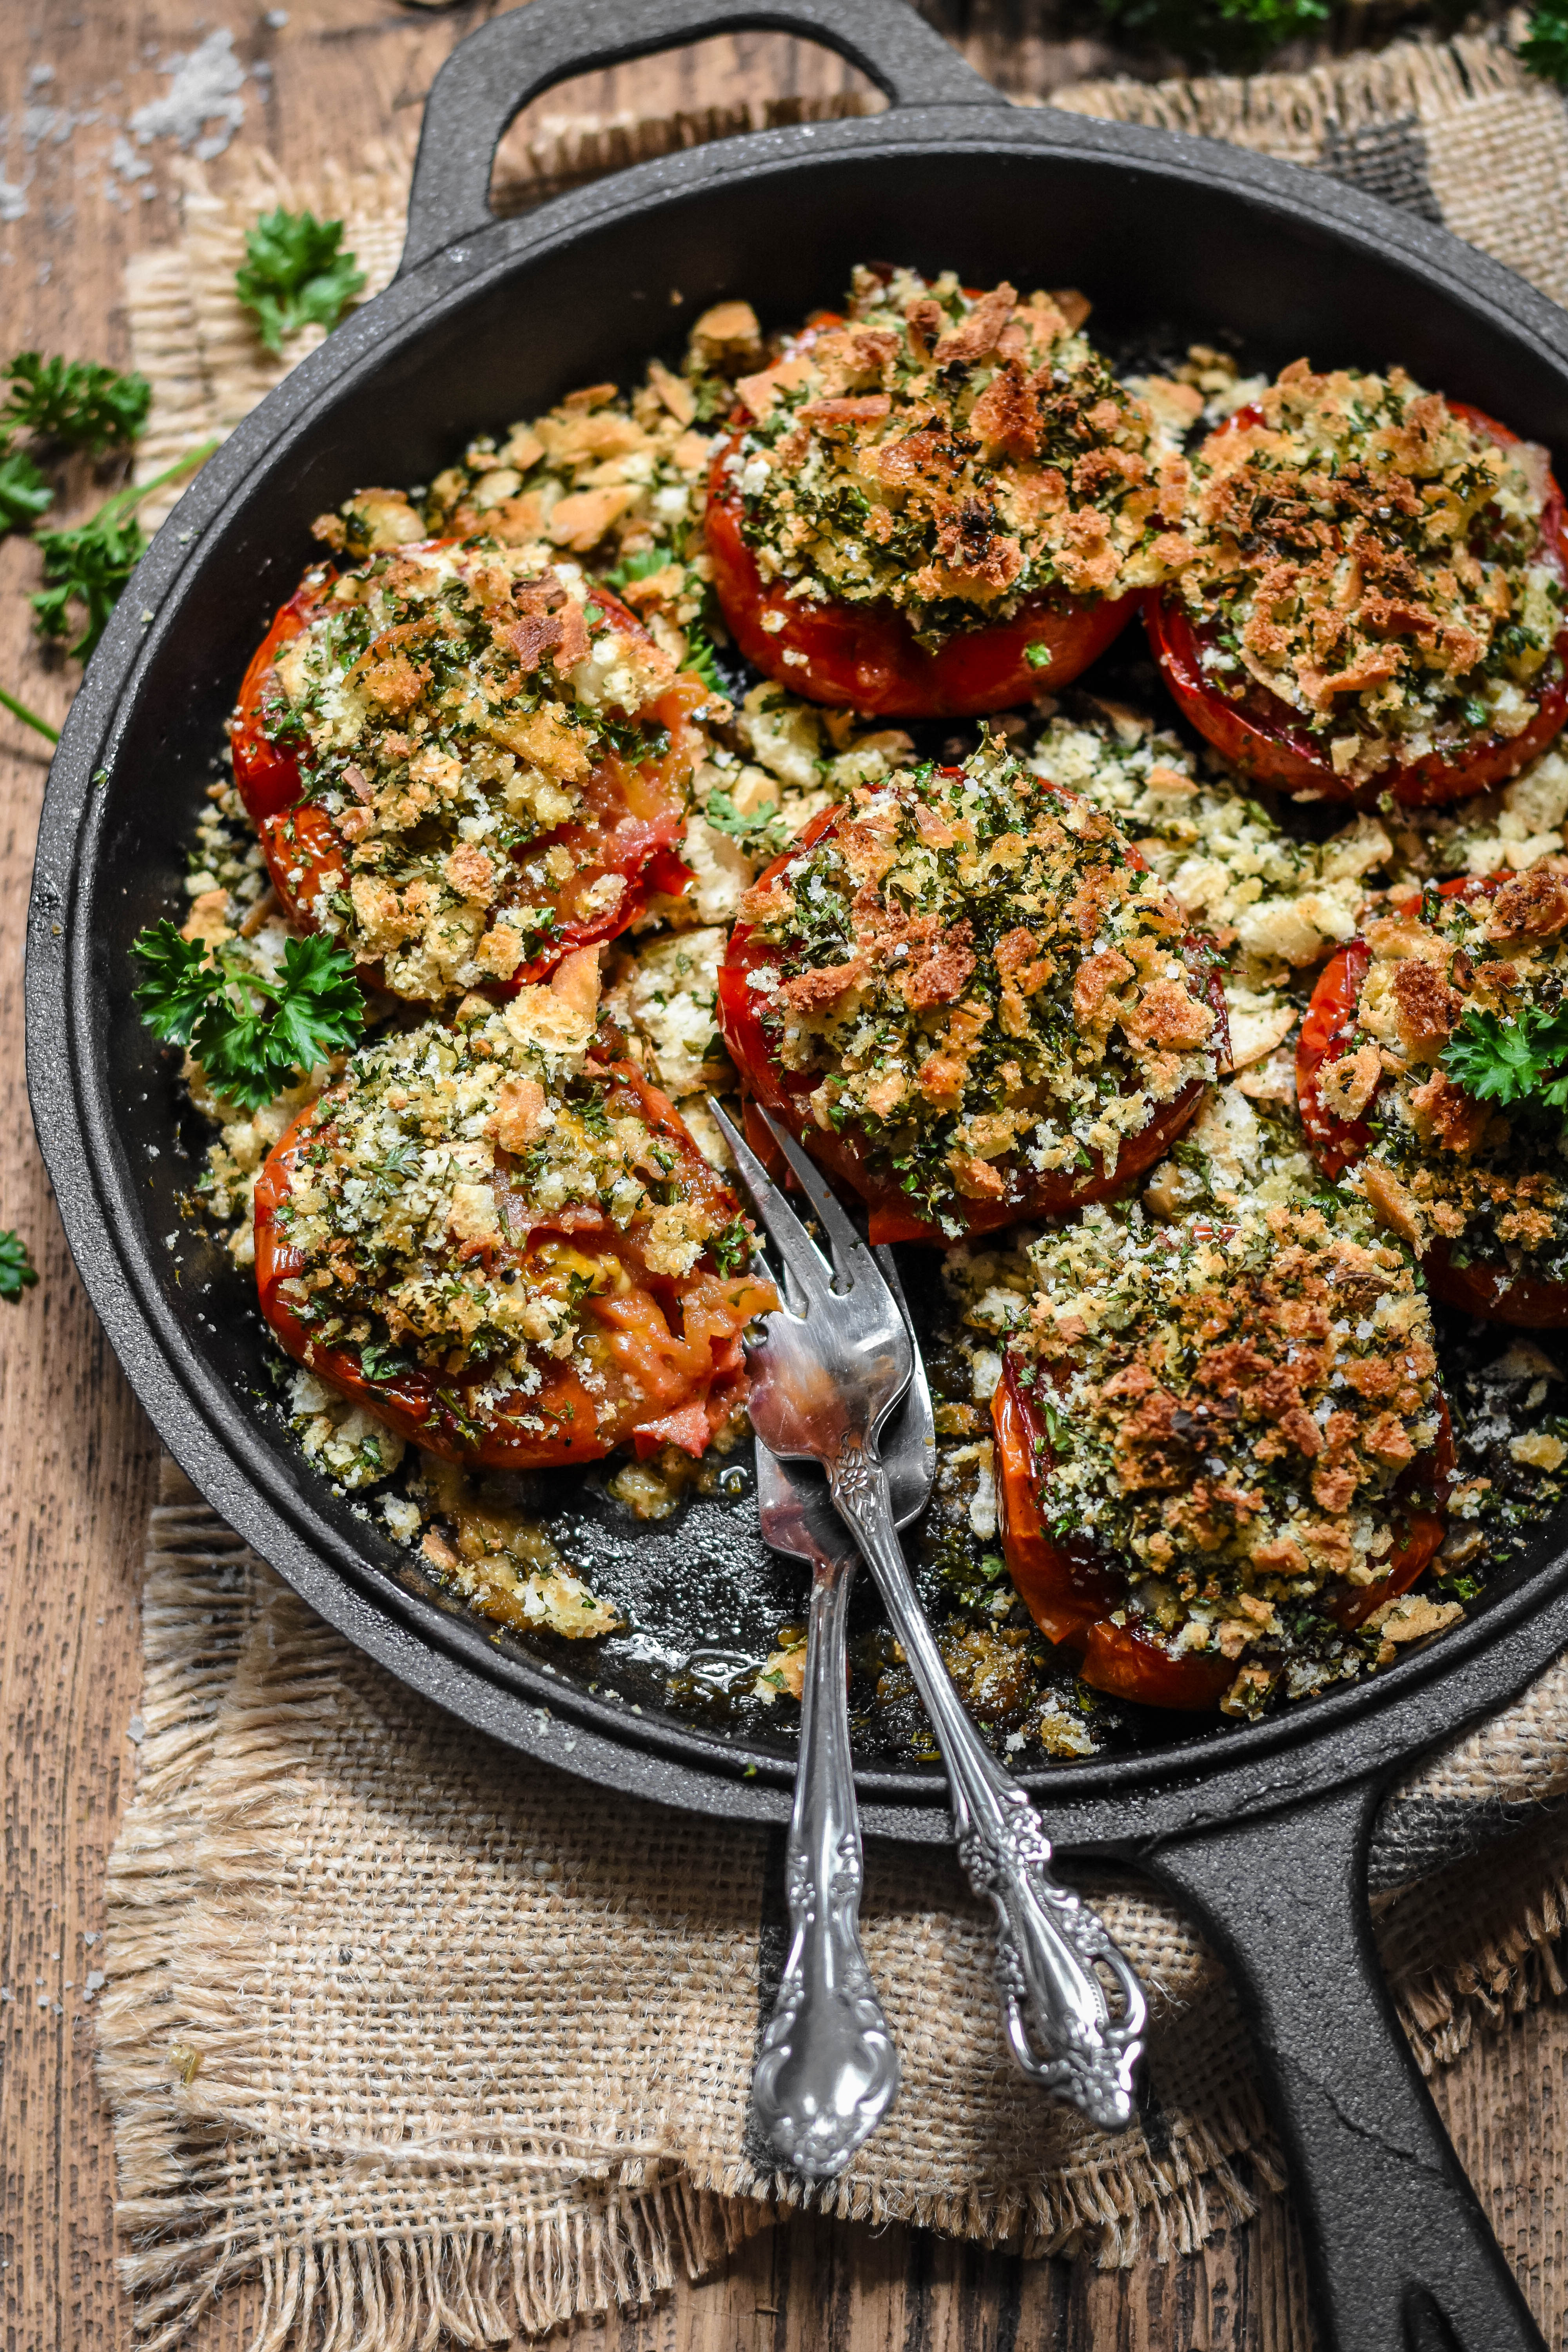 Provence Style Tomatoes With Breadcrumbs And Herbs Tomates A La